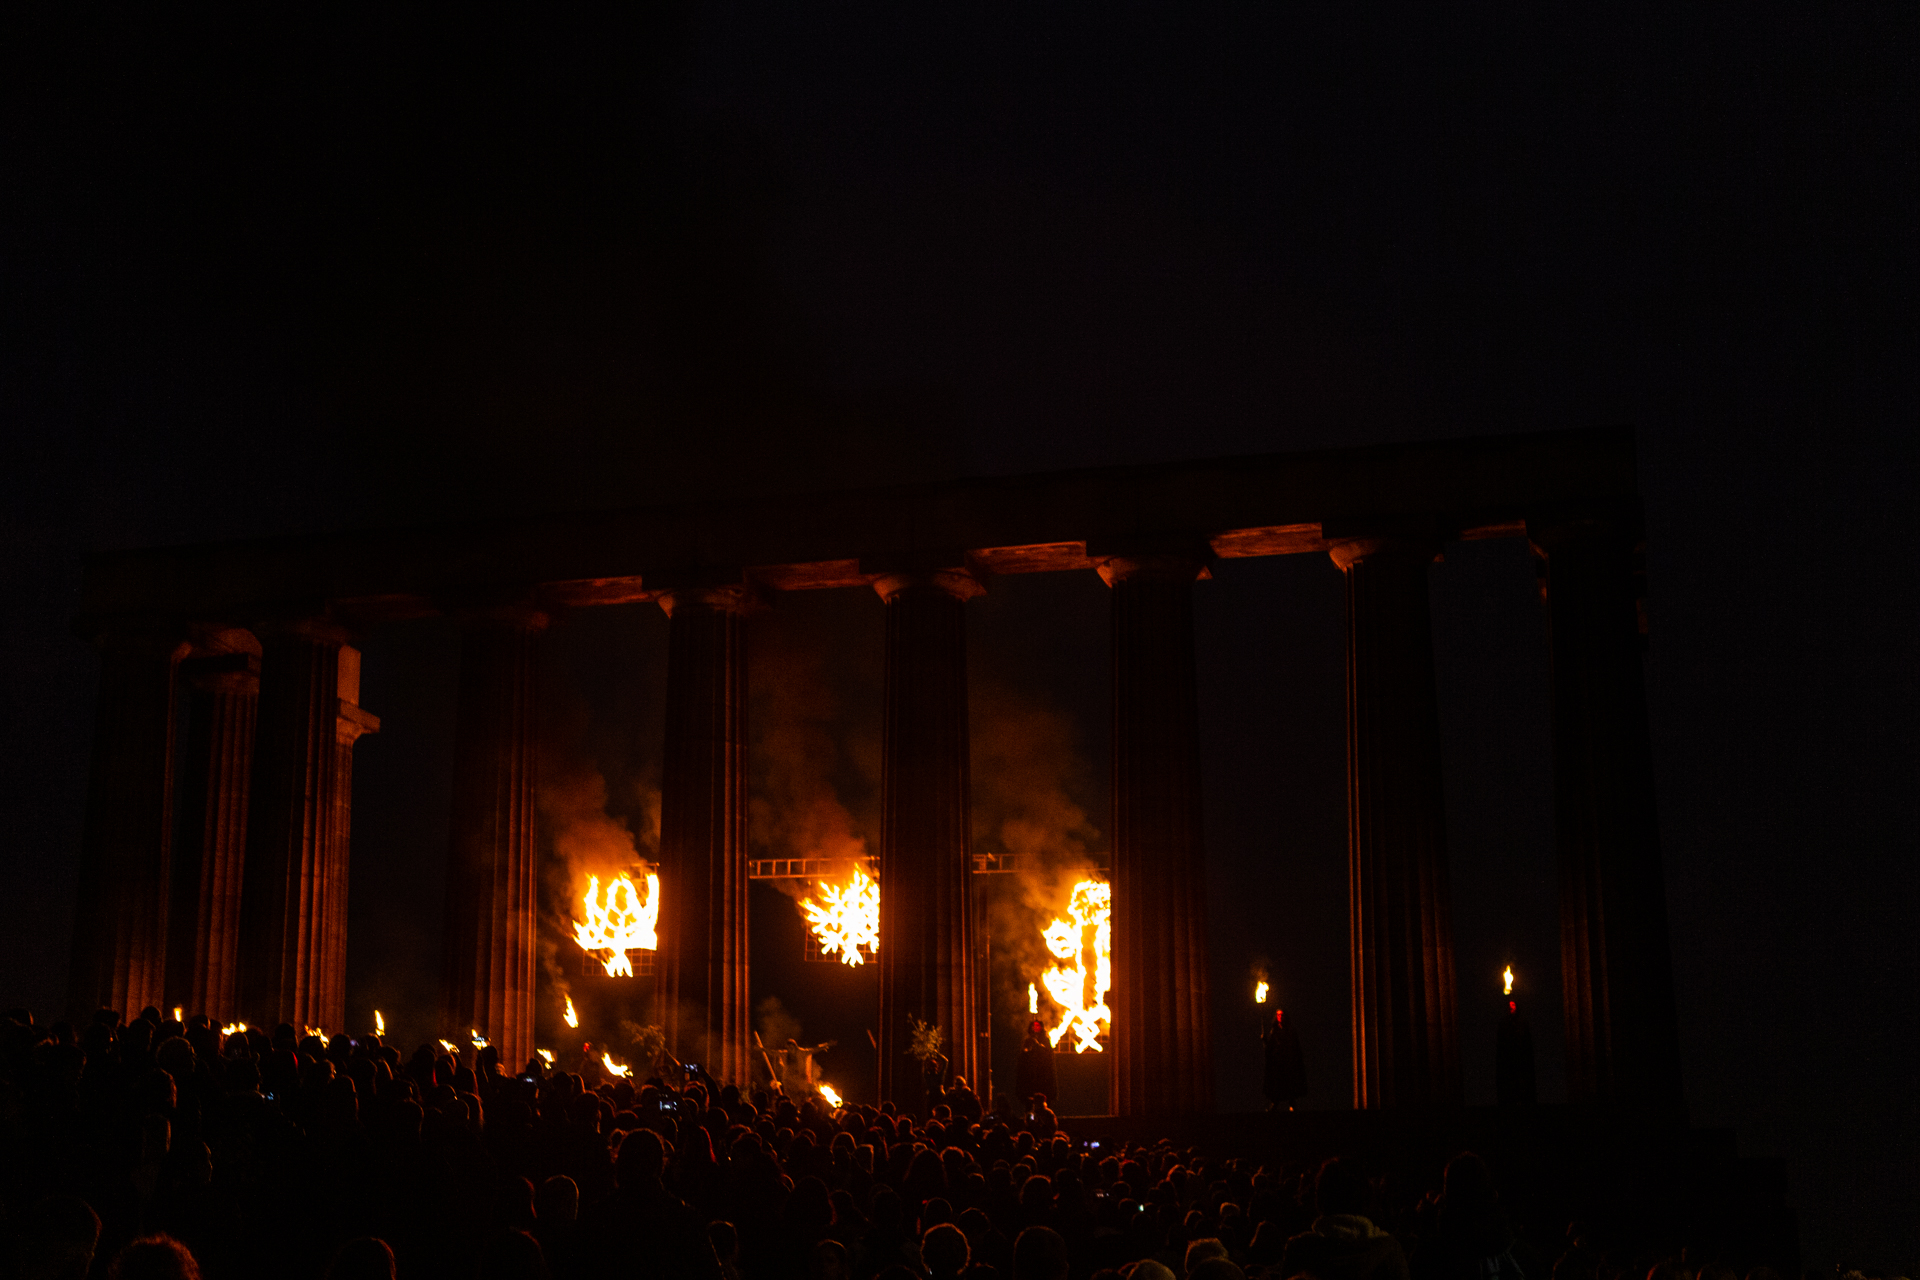 Beltane Fire Festival Edinburgh ©jennifer bailey 2019